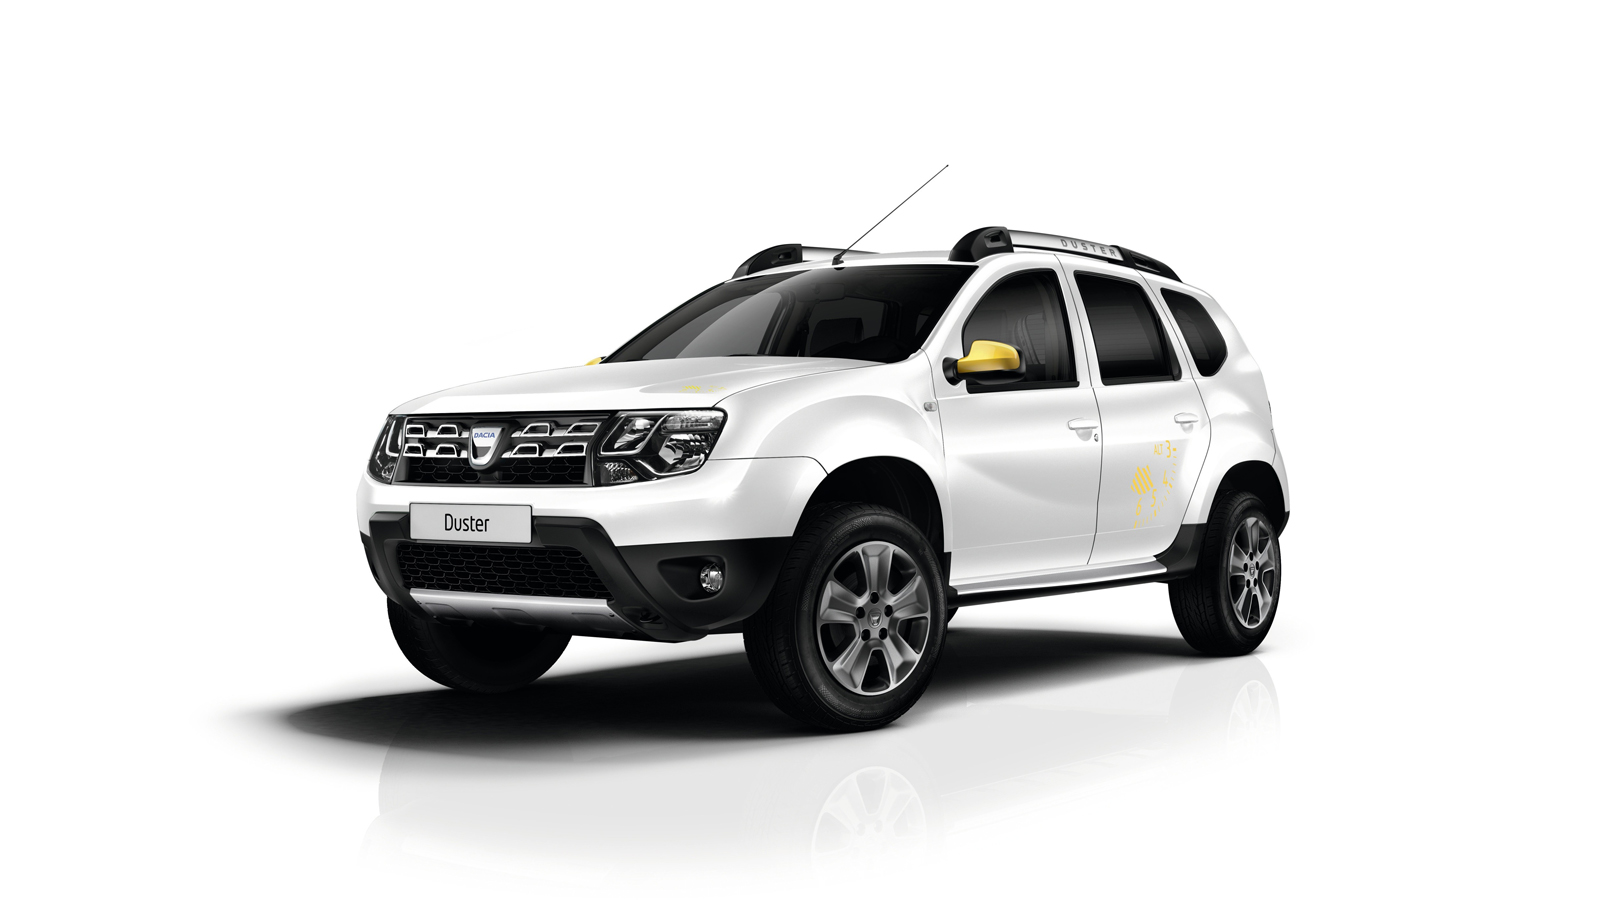 dacia duster 4x4 2015 from go car rental guide to iceland. Black Bedroom Furniture Sets. Home Design Ideas